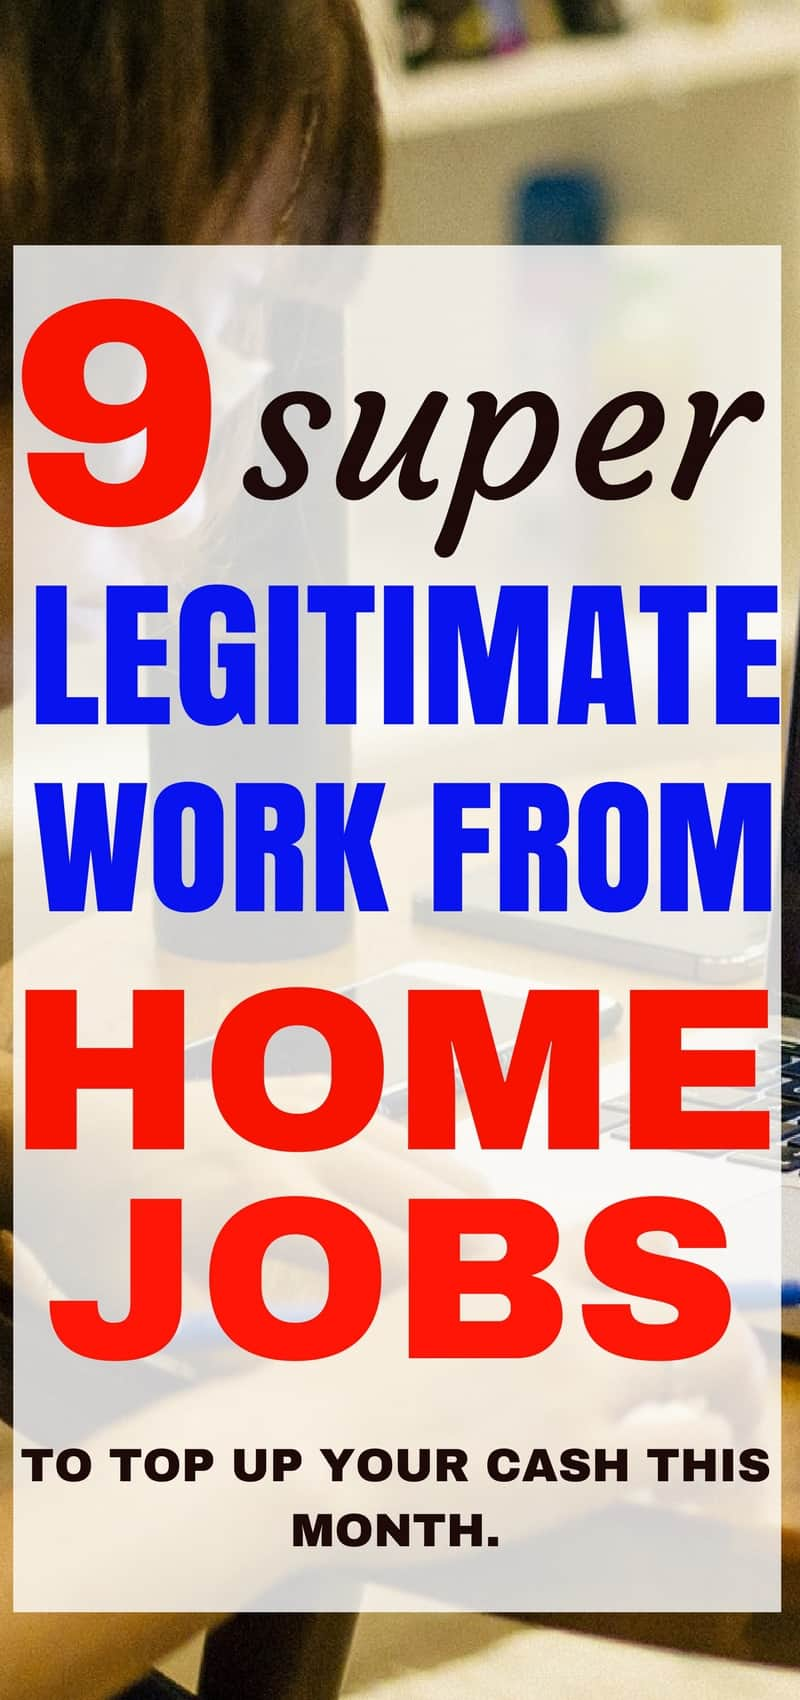 Smart Work Home Jobs — These Are the Best Part-Time Jobs You